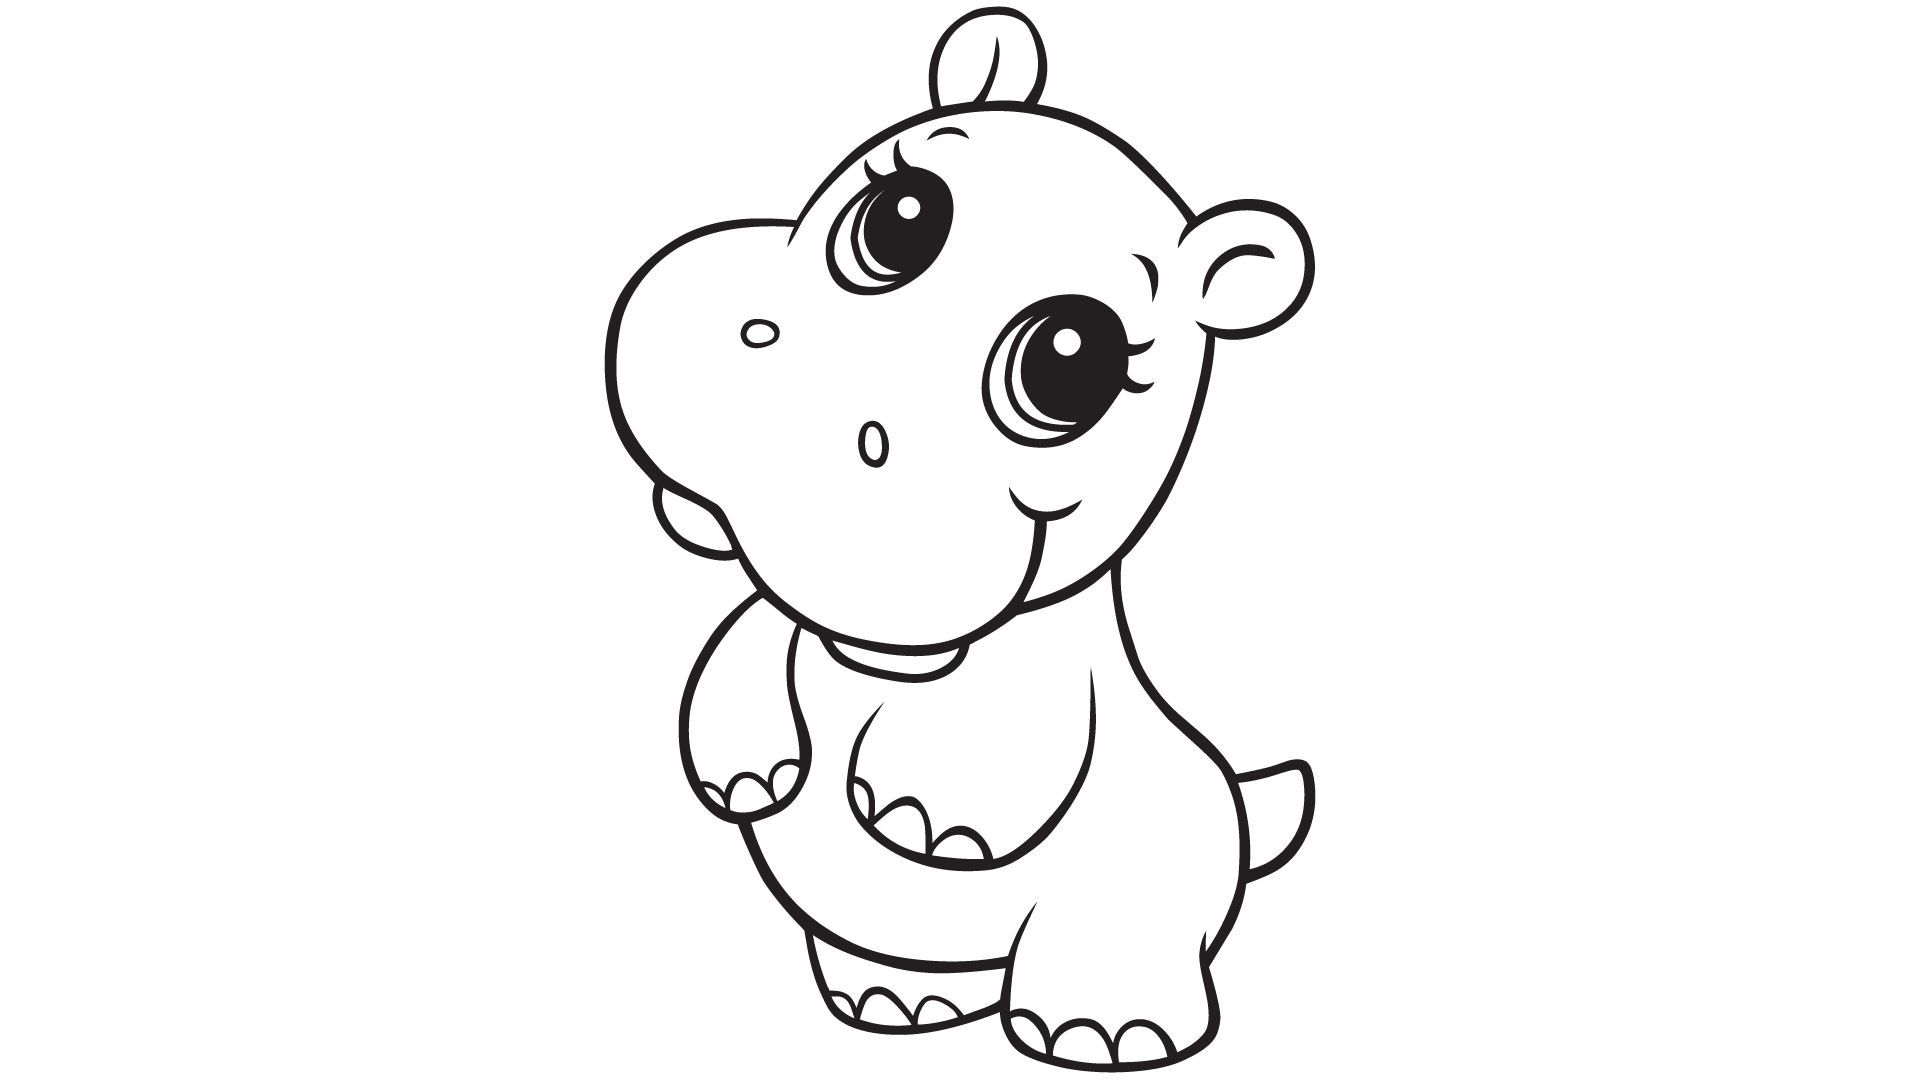 Baby Hippo Cute Coloring Pages Baby Animal Drawings Animal Coloring Books